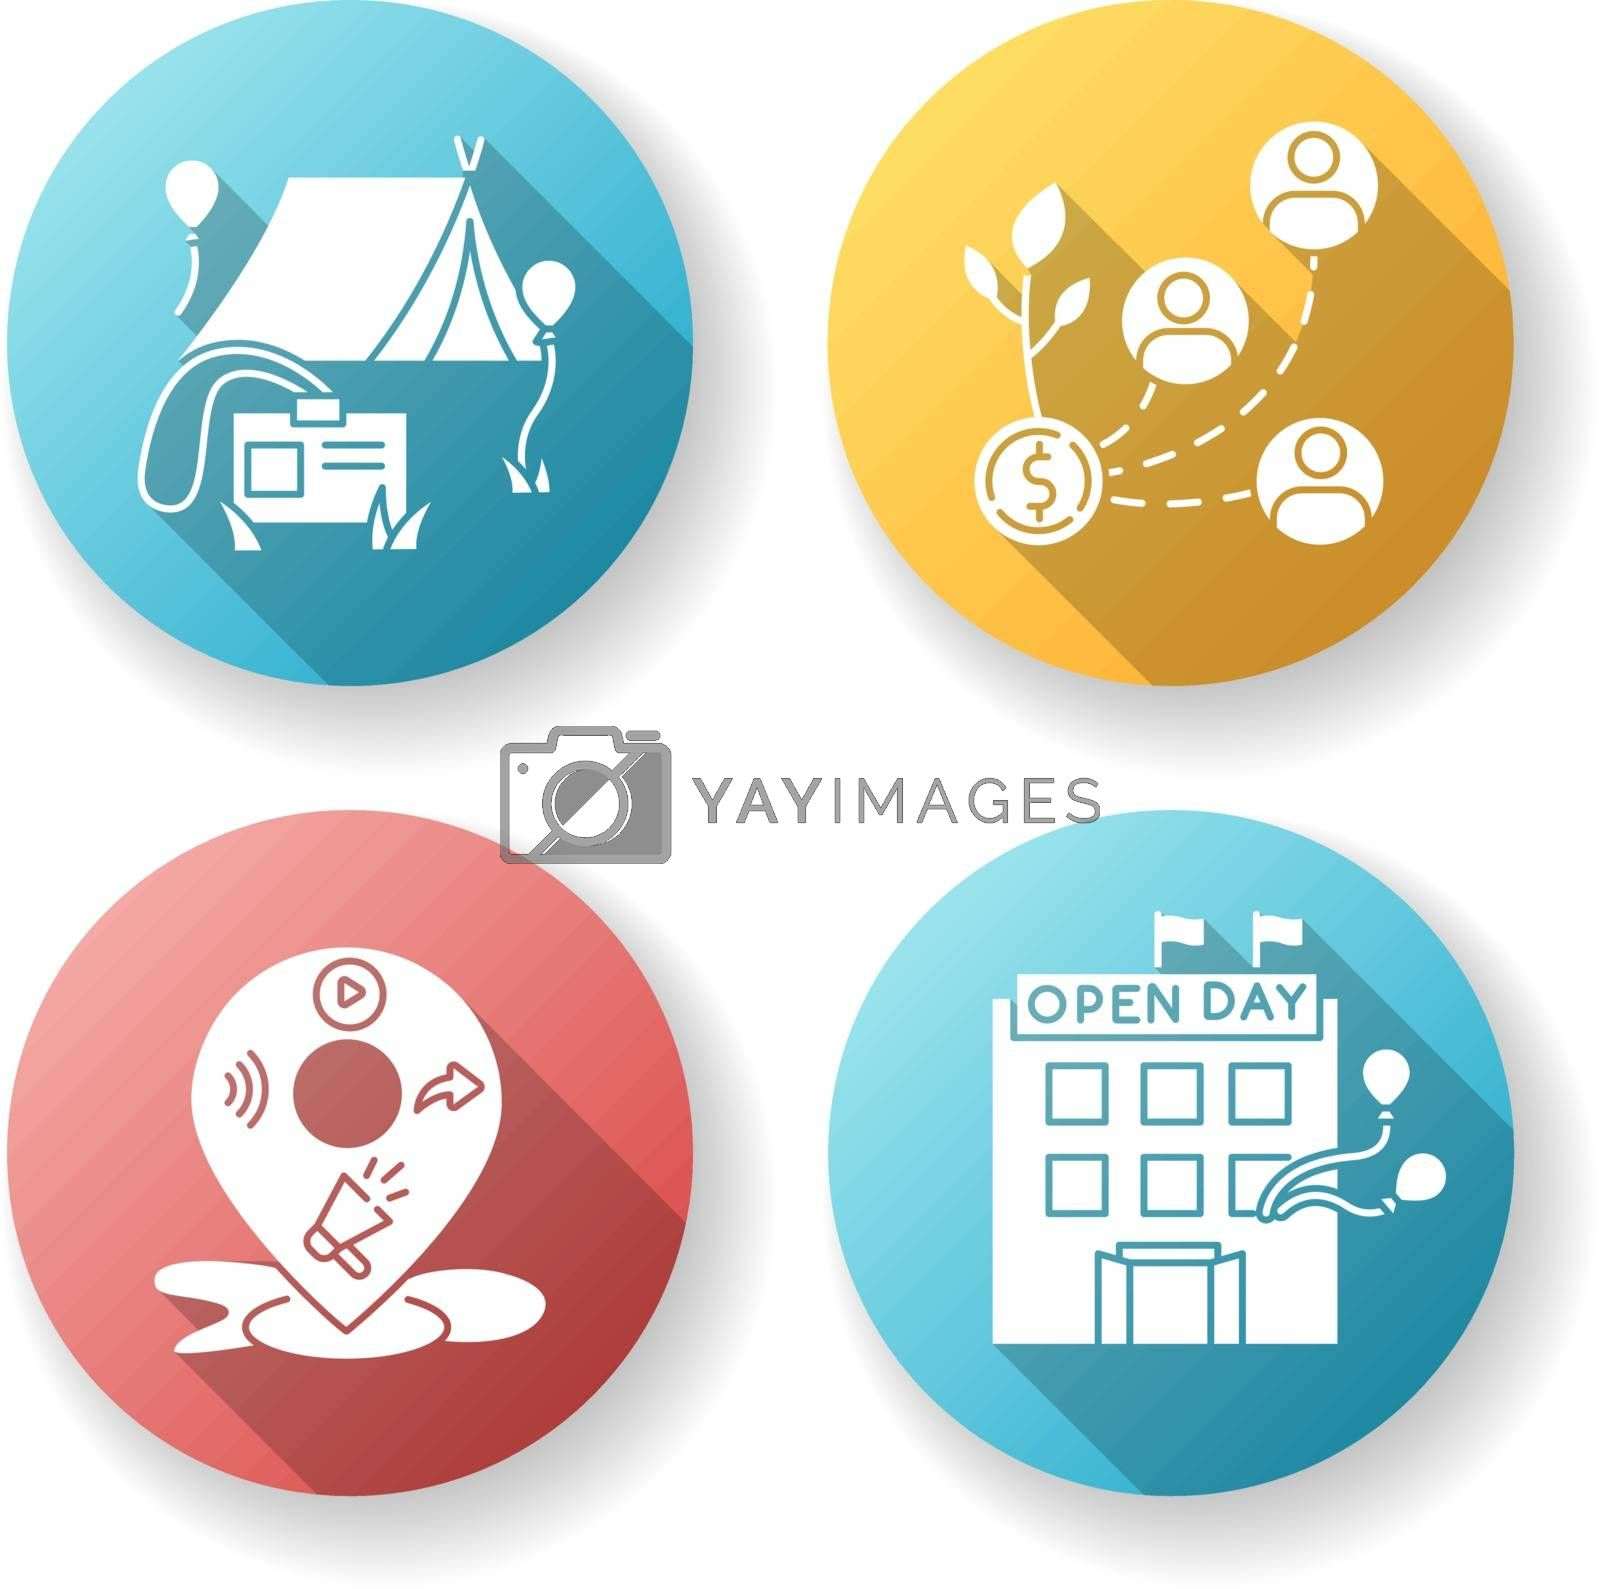 Event organization flat design long shadow glyph icons set. Special event for corporate employees. Stakeholder invest in organization. Open house day. Silhouette RGB color illustration